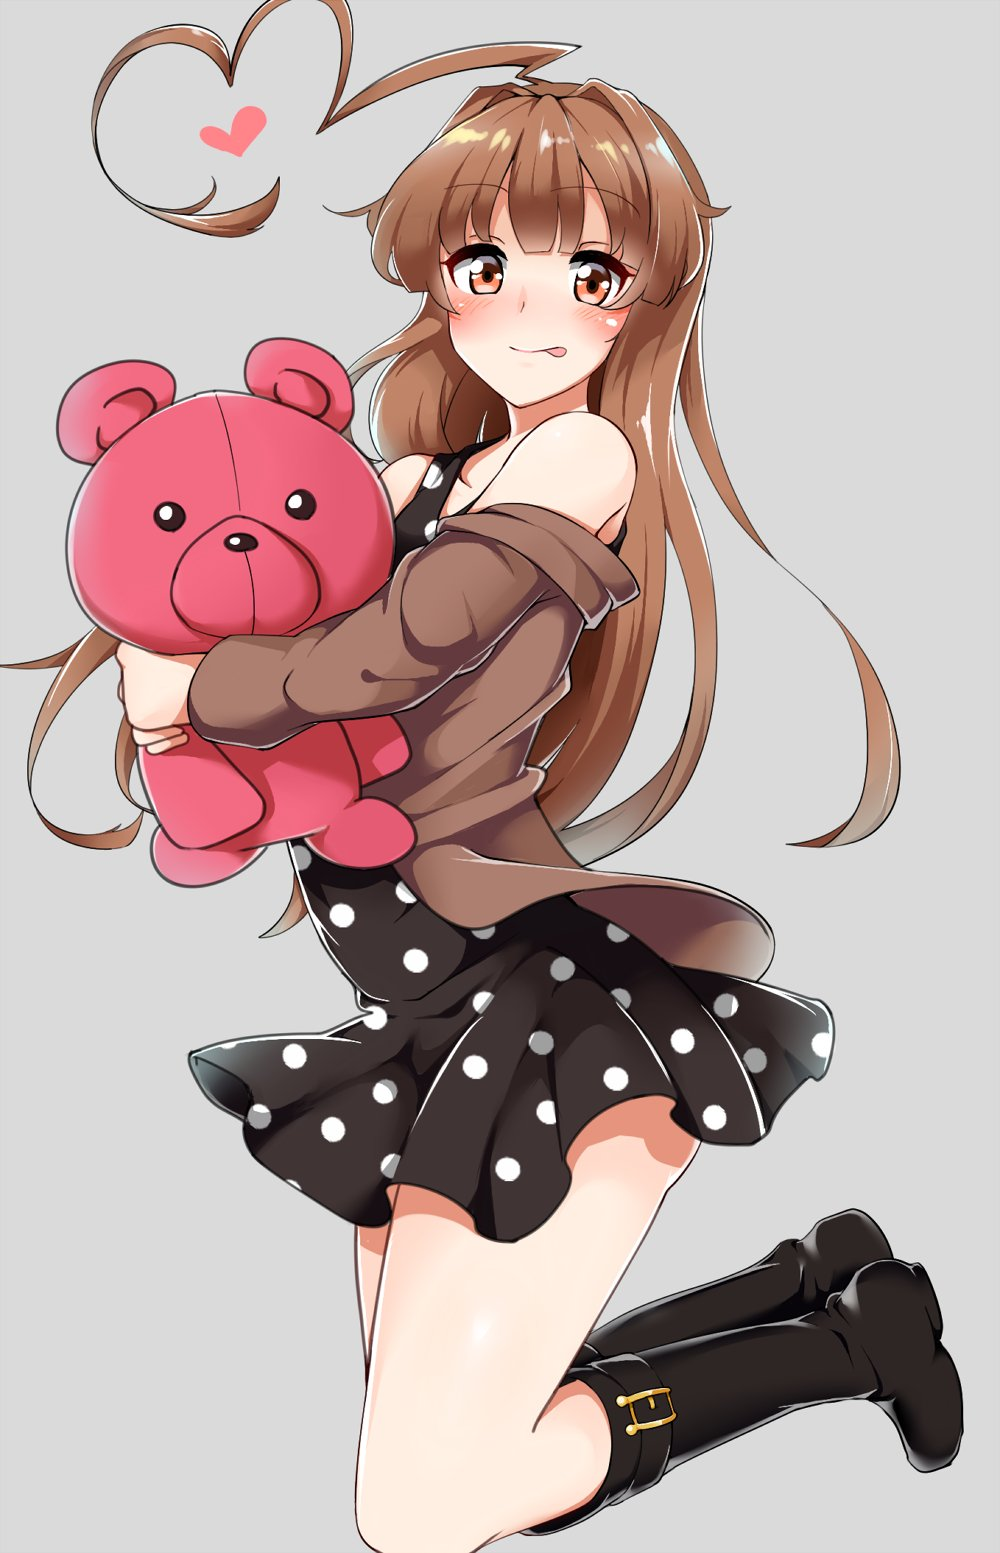 1girl ahoge aoi_renji ass bare_shoulders black_footwear blush boots brown_eyes brown_hair brown_jacket dress eyebrows_visible_through_hair full_body grey_background heart_ahoge highres holding holding_stuffed_animal jacket kantai_collection kuma_(kantai_collection) long_hair looking_at_viewer polka_dot polka_dot_dress simple_background solo stuffed_animal stuffed_toy teddy_bear tongue tongue_out